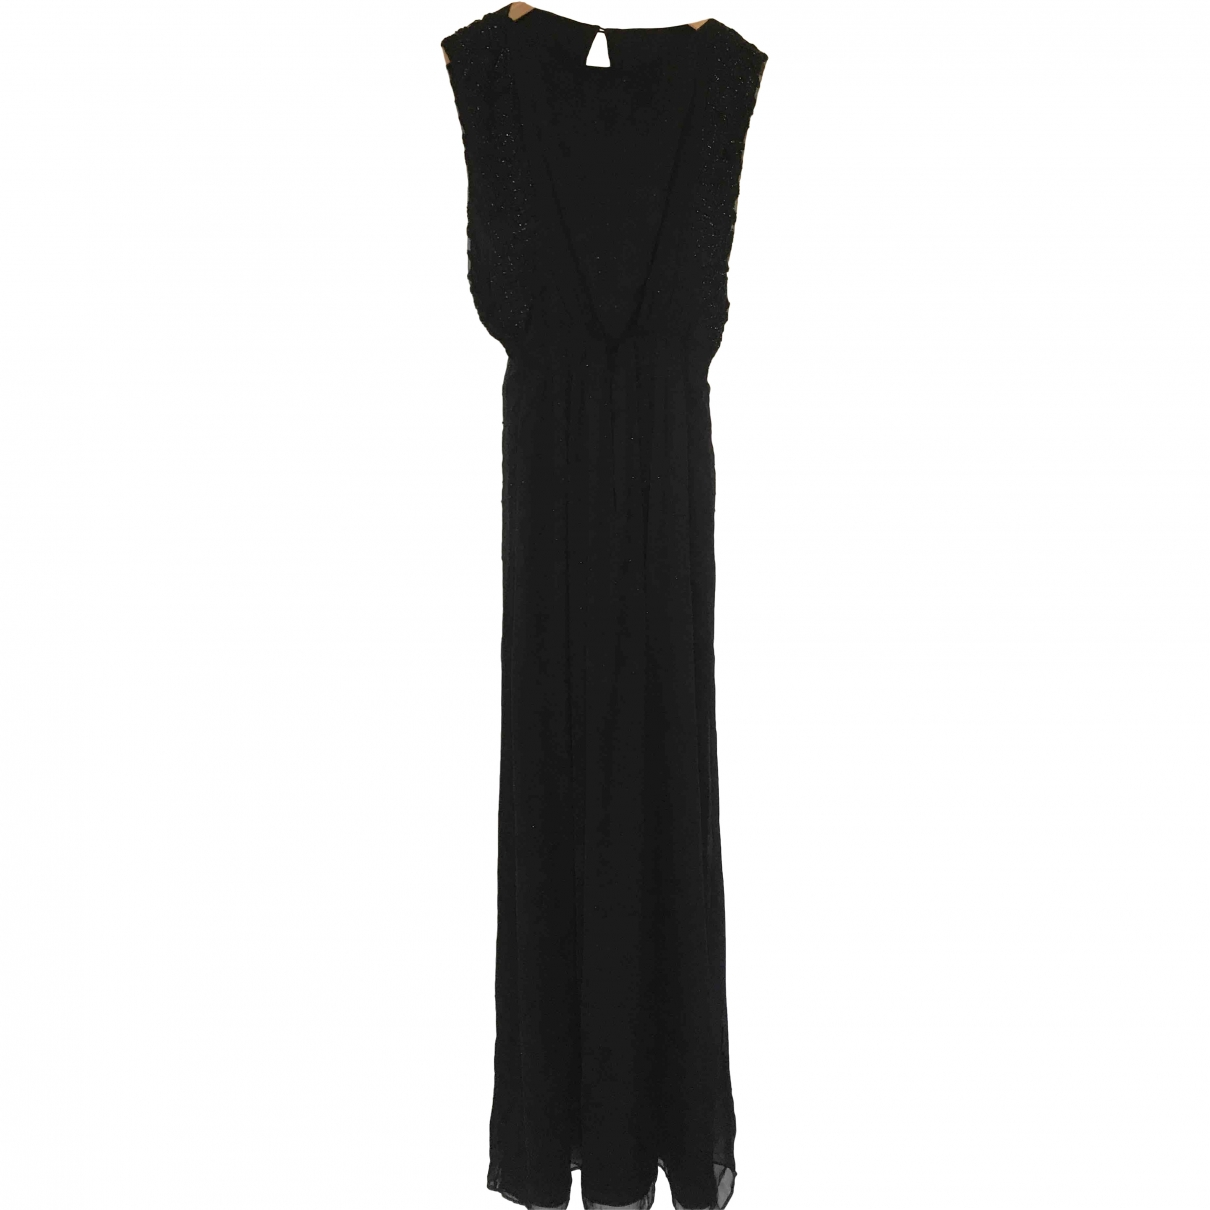 Hoss Intropia \N Black dress for Women 40 FR